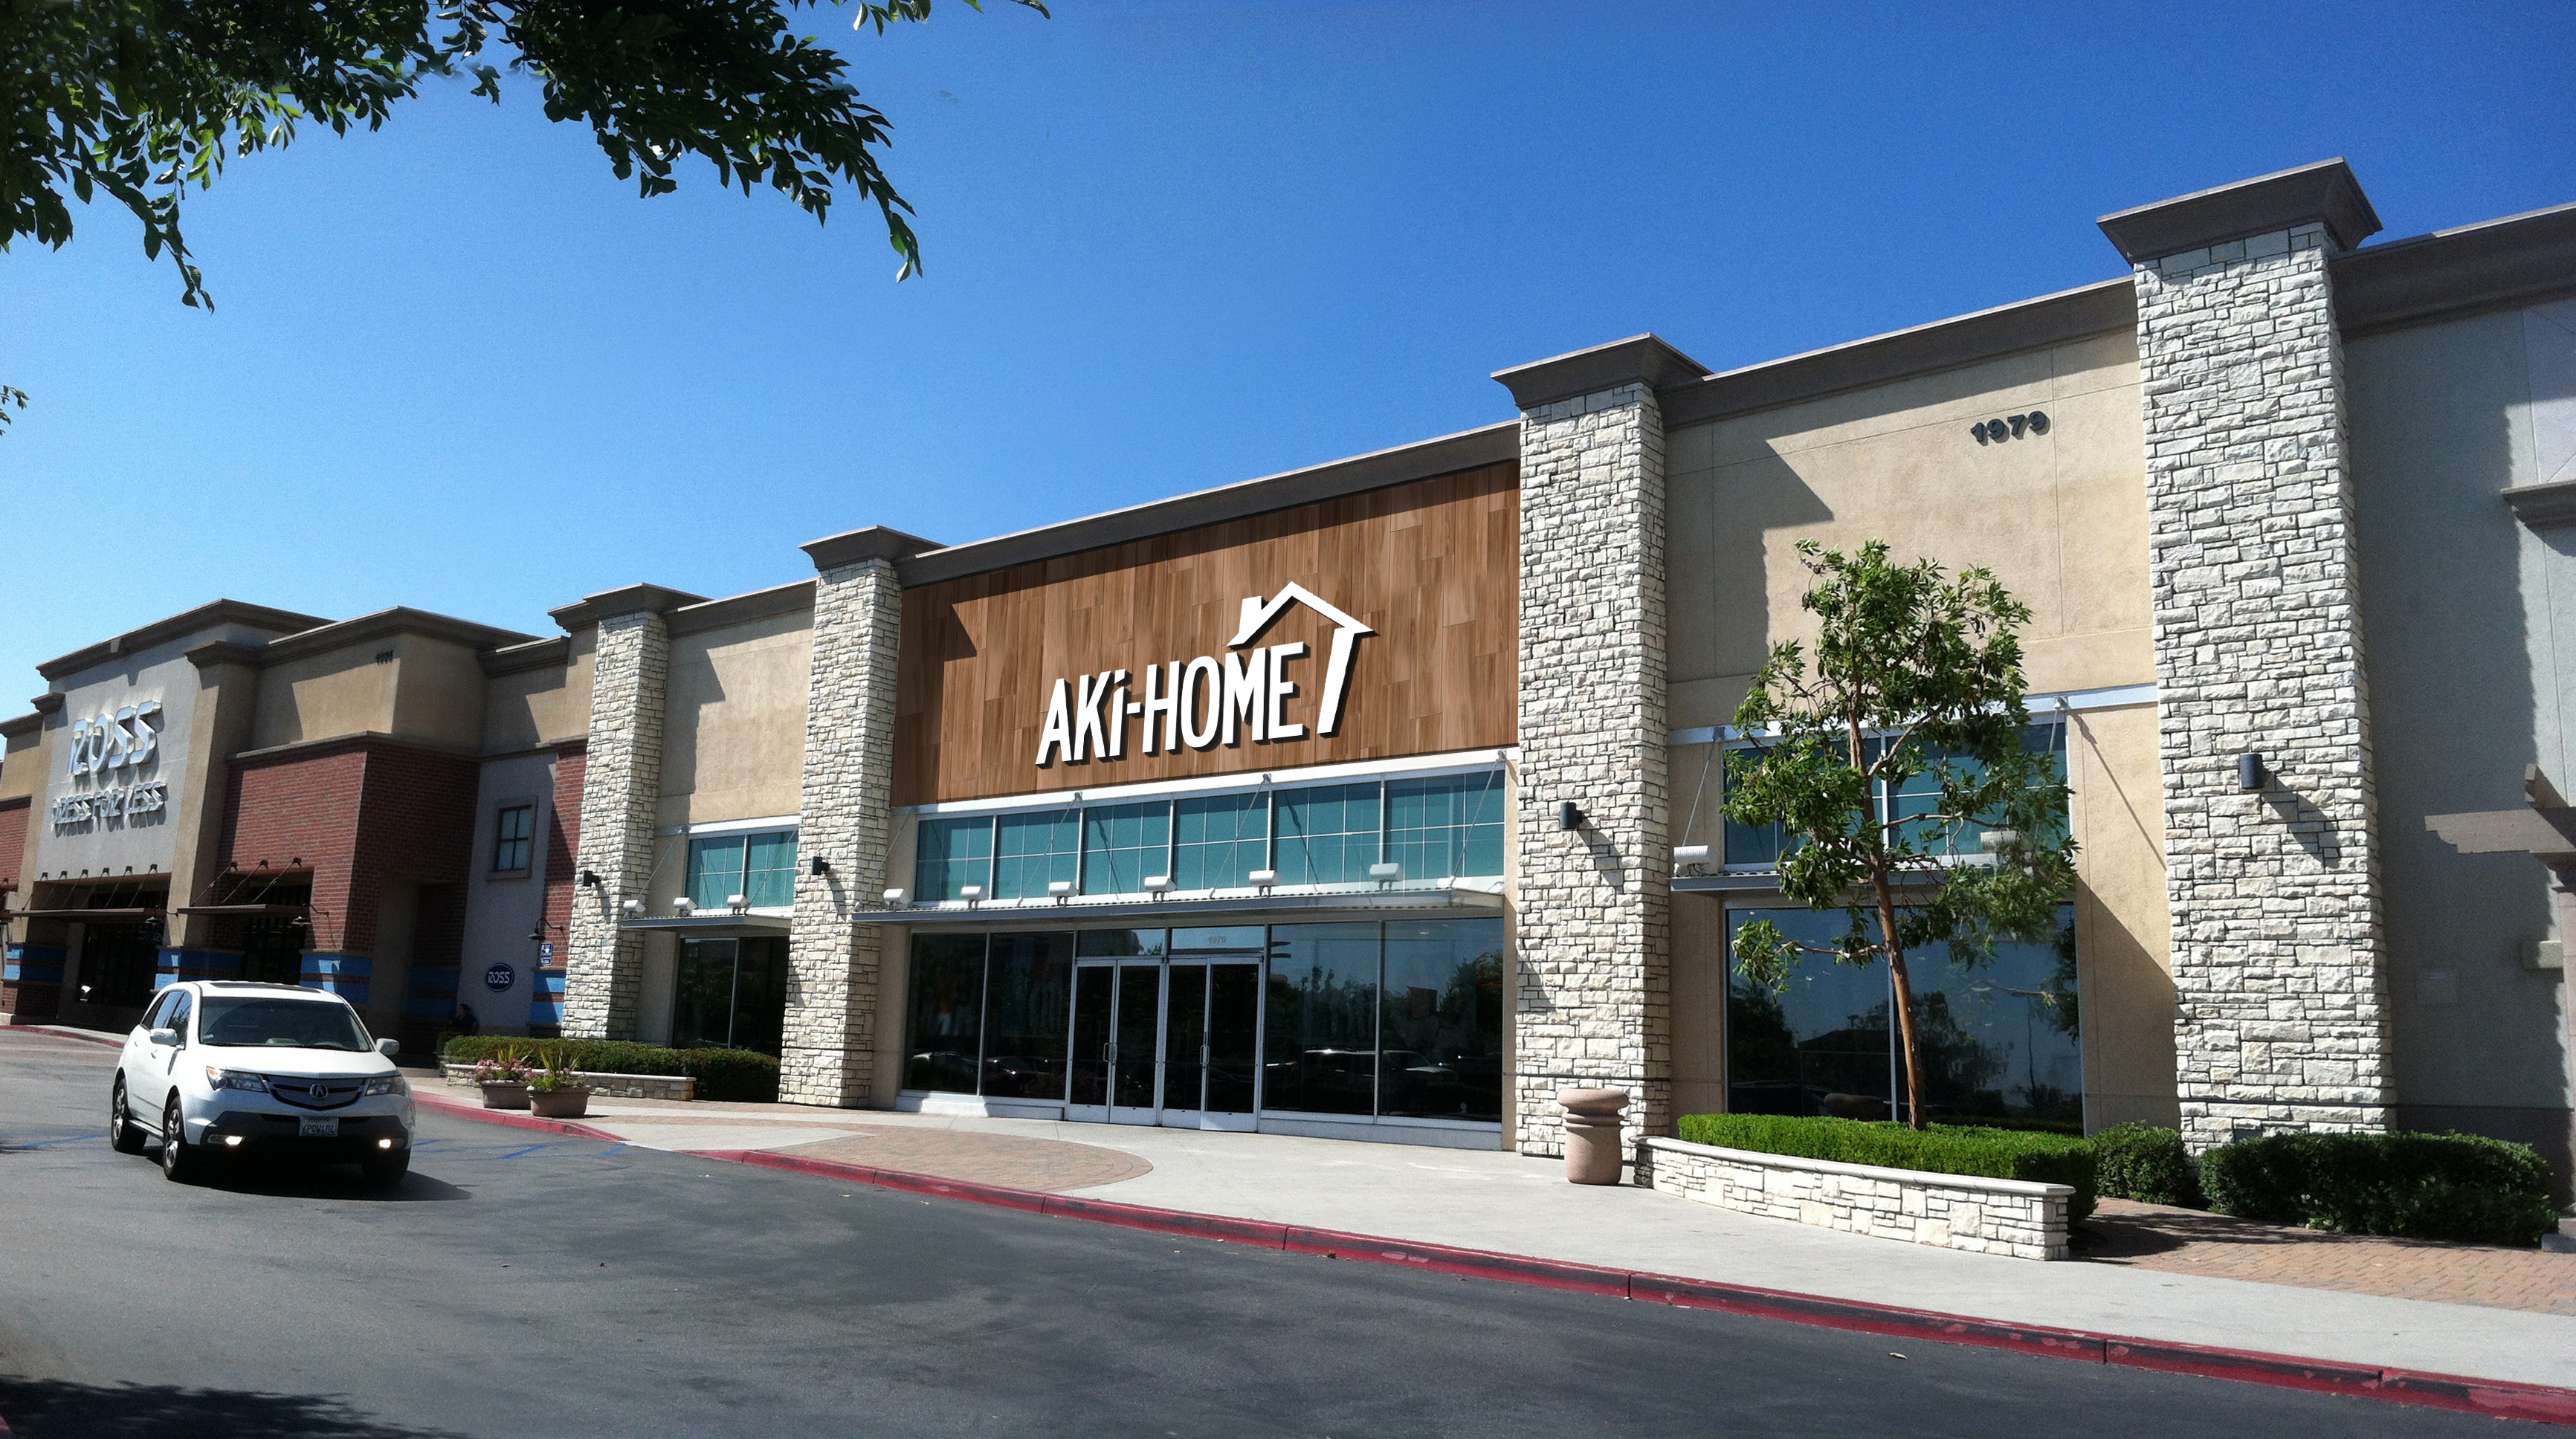 Artist trendering of Aki Home at Amerige Hieghts in Fullerton  Ca. Nitori Expands Furniture Chain from Japan to US with Aki Home